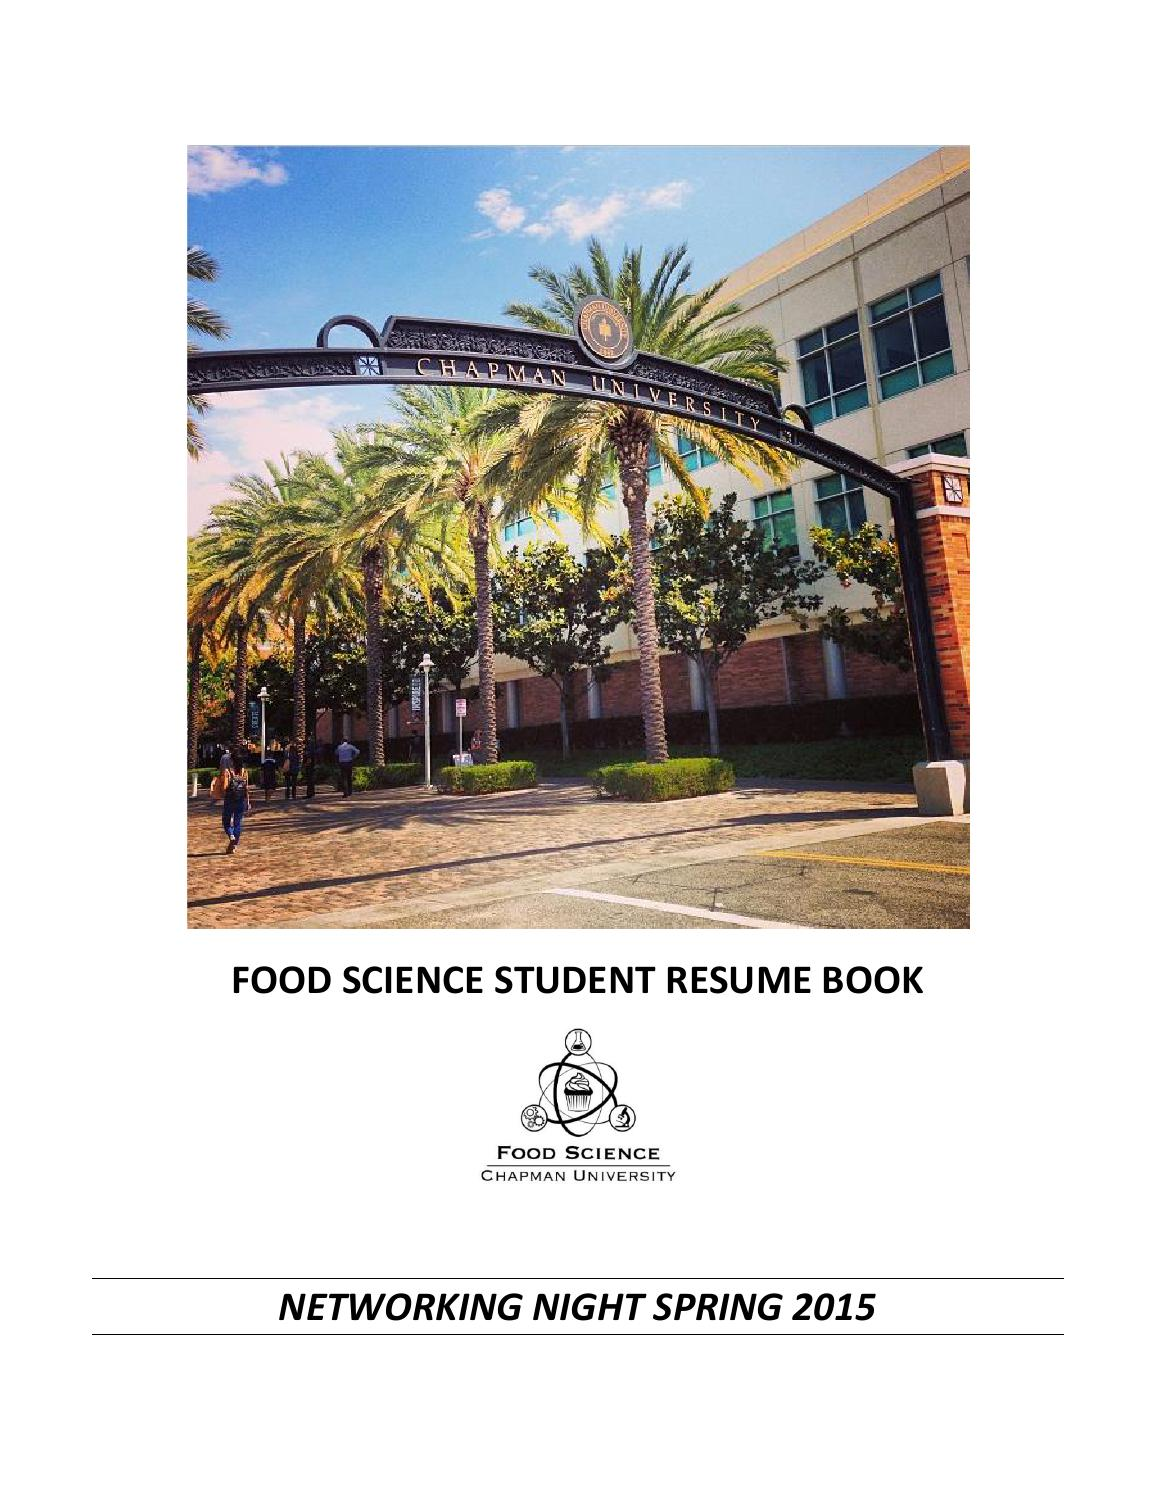 food science resume book network night 2015 by sonja montiel issuu - Resume Food Science Student